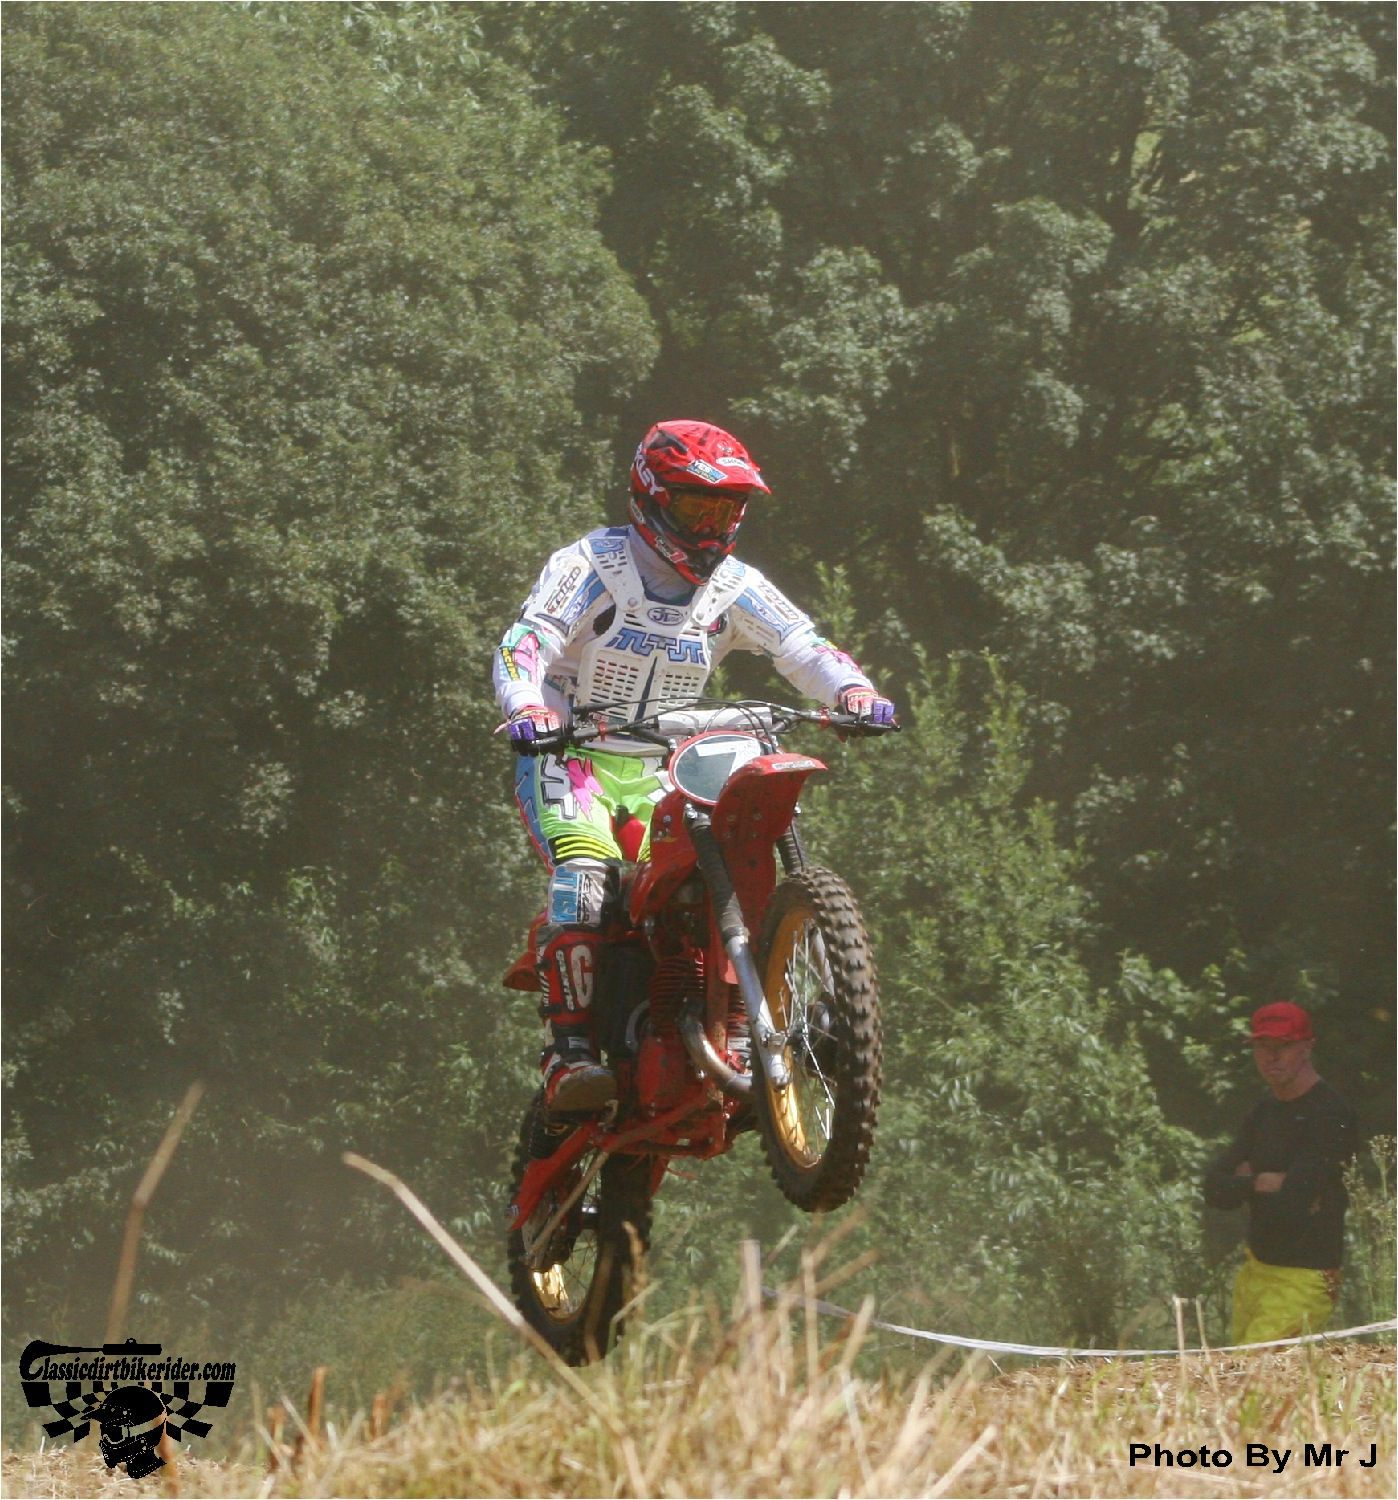 king of the castle 2015 photos Farleigh Castle twinshock motocross classicdirtbikerider.com 104